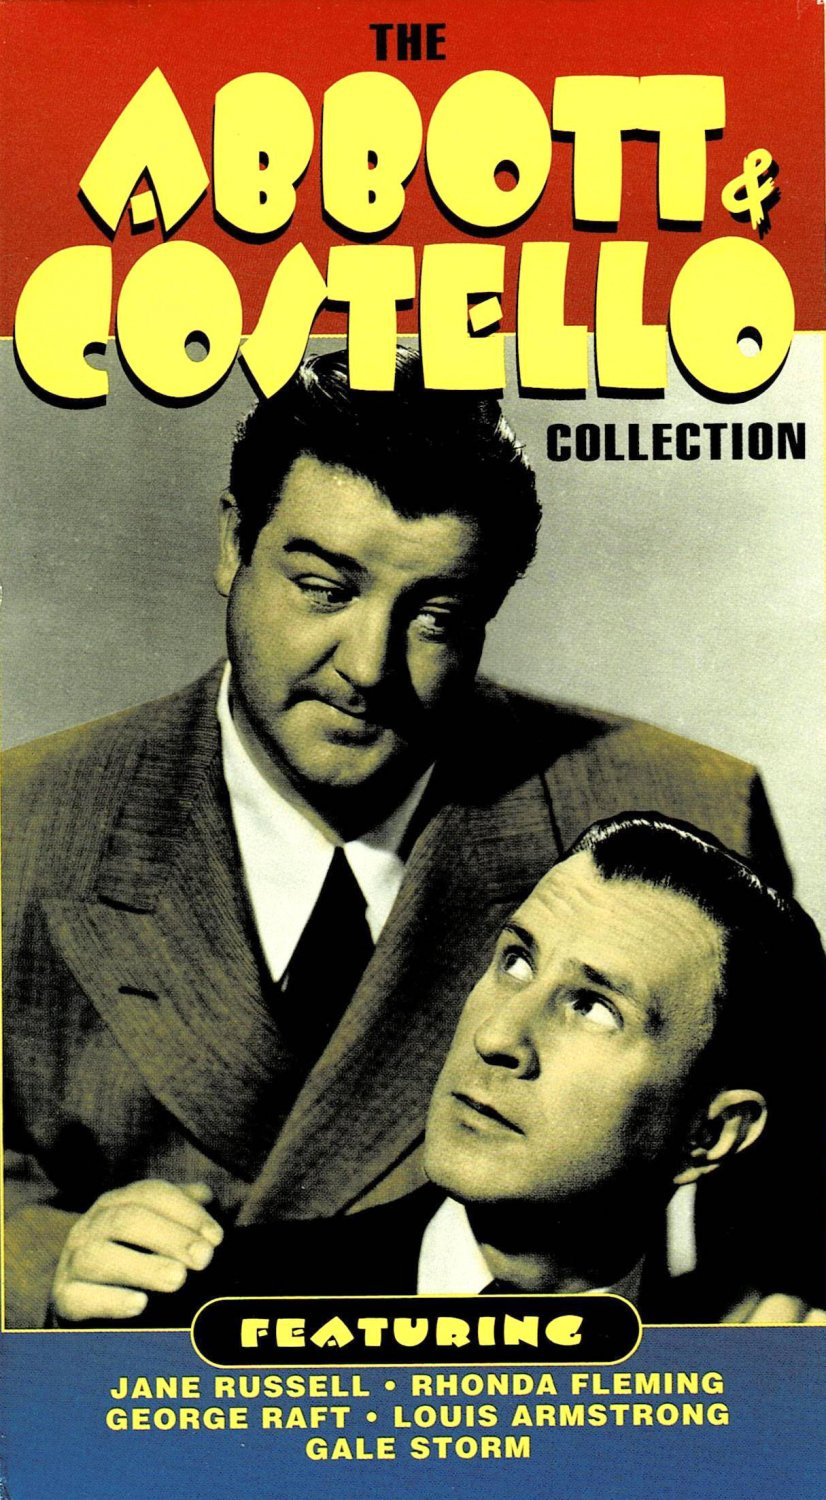 The Abbott & Costello Collection Jane Russell Louis Armstrong Gale Storm VHS Video Comedy 3 Hours